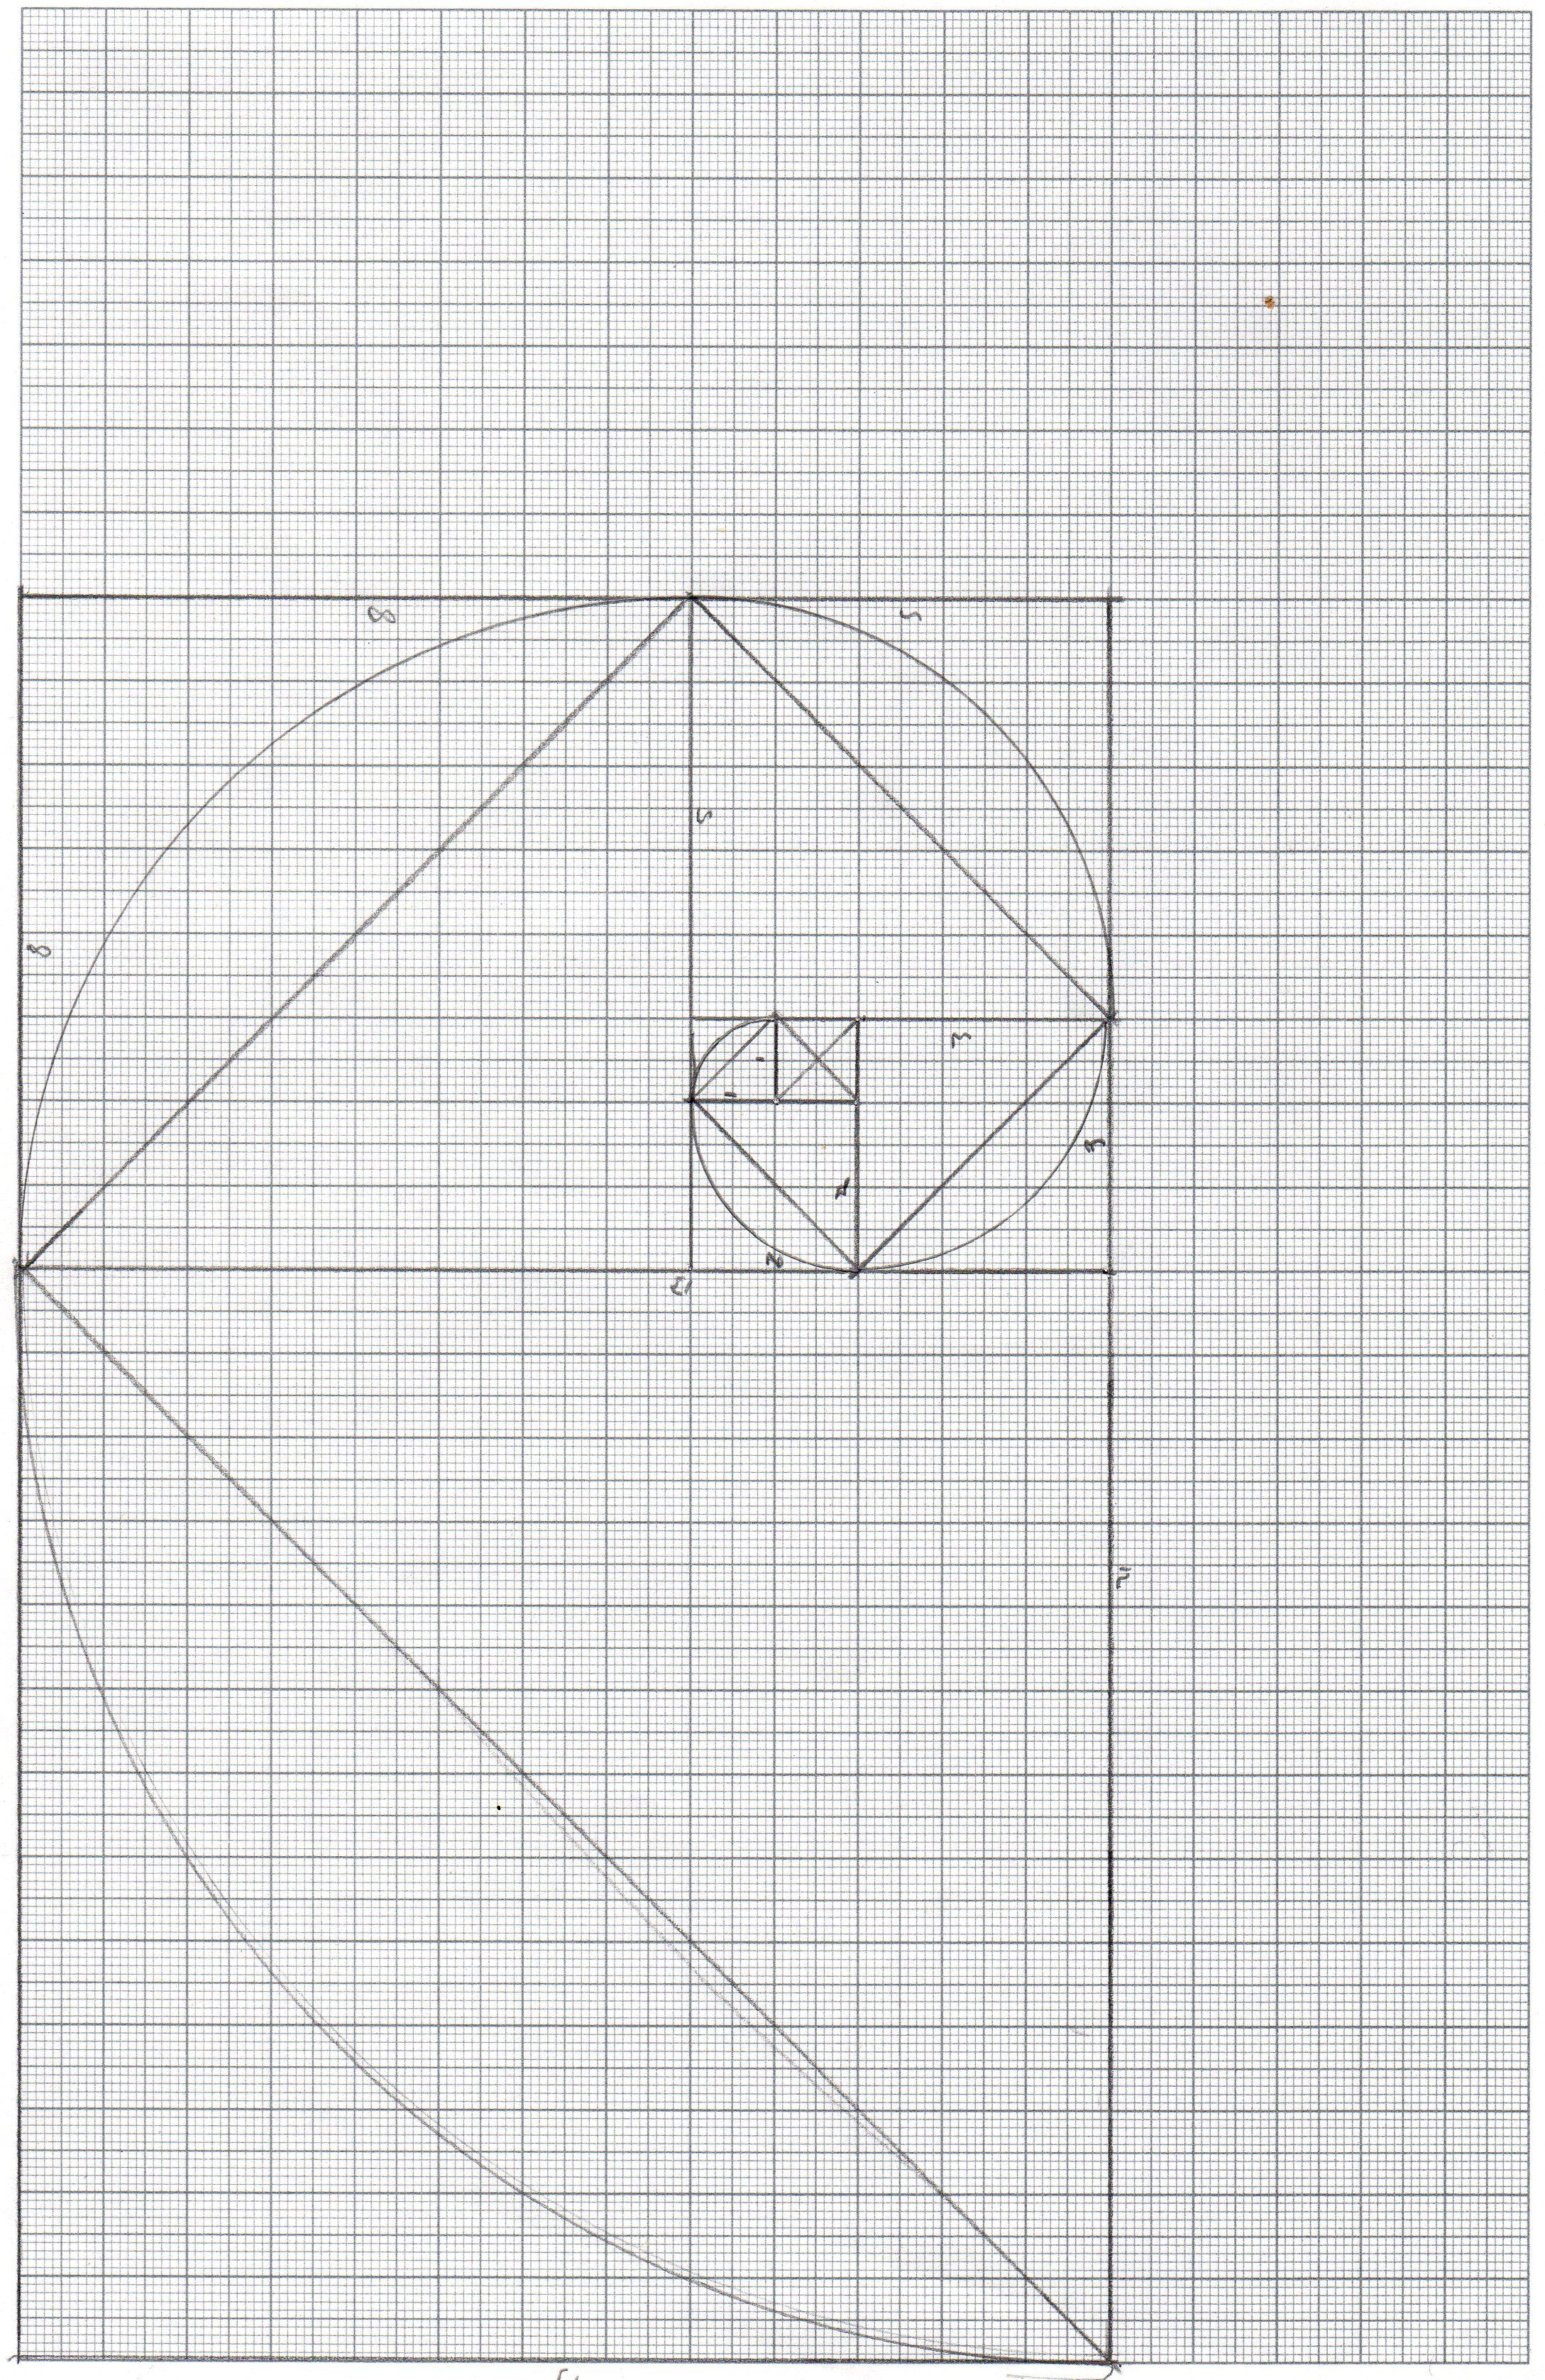 a line drawing of the fibonacci spiral on graph paper